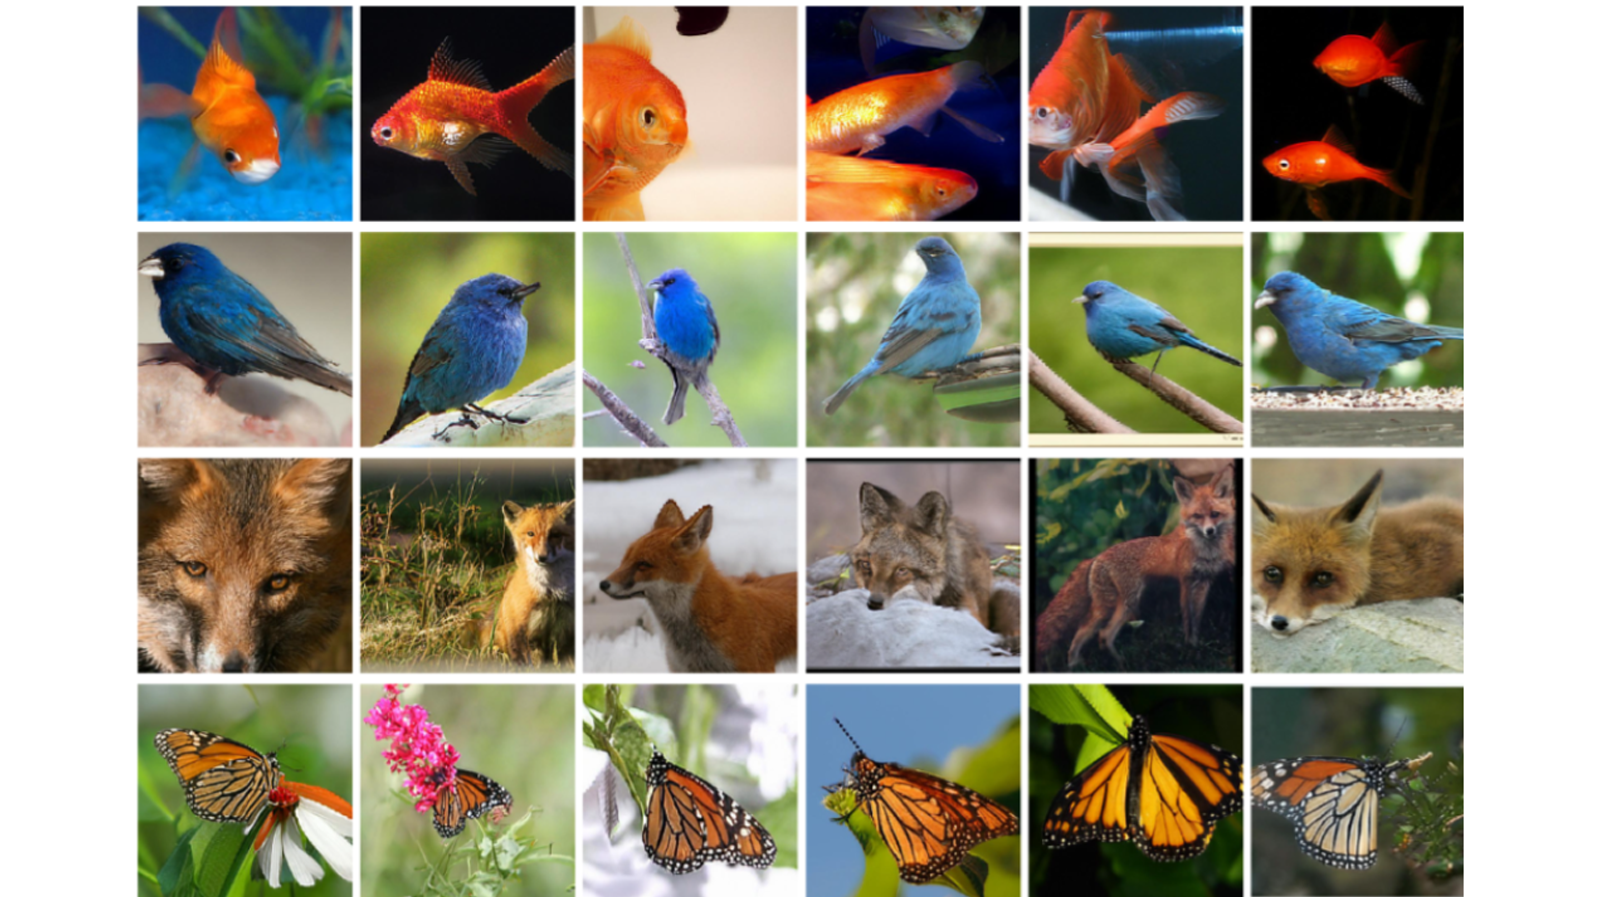 Selected example generations of class conditional 256×256 natural images for the AI engine to learn from. Each row contains examples from a particular class.